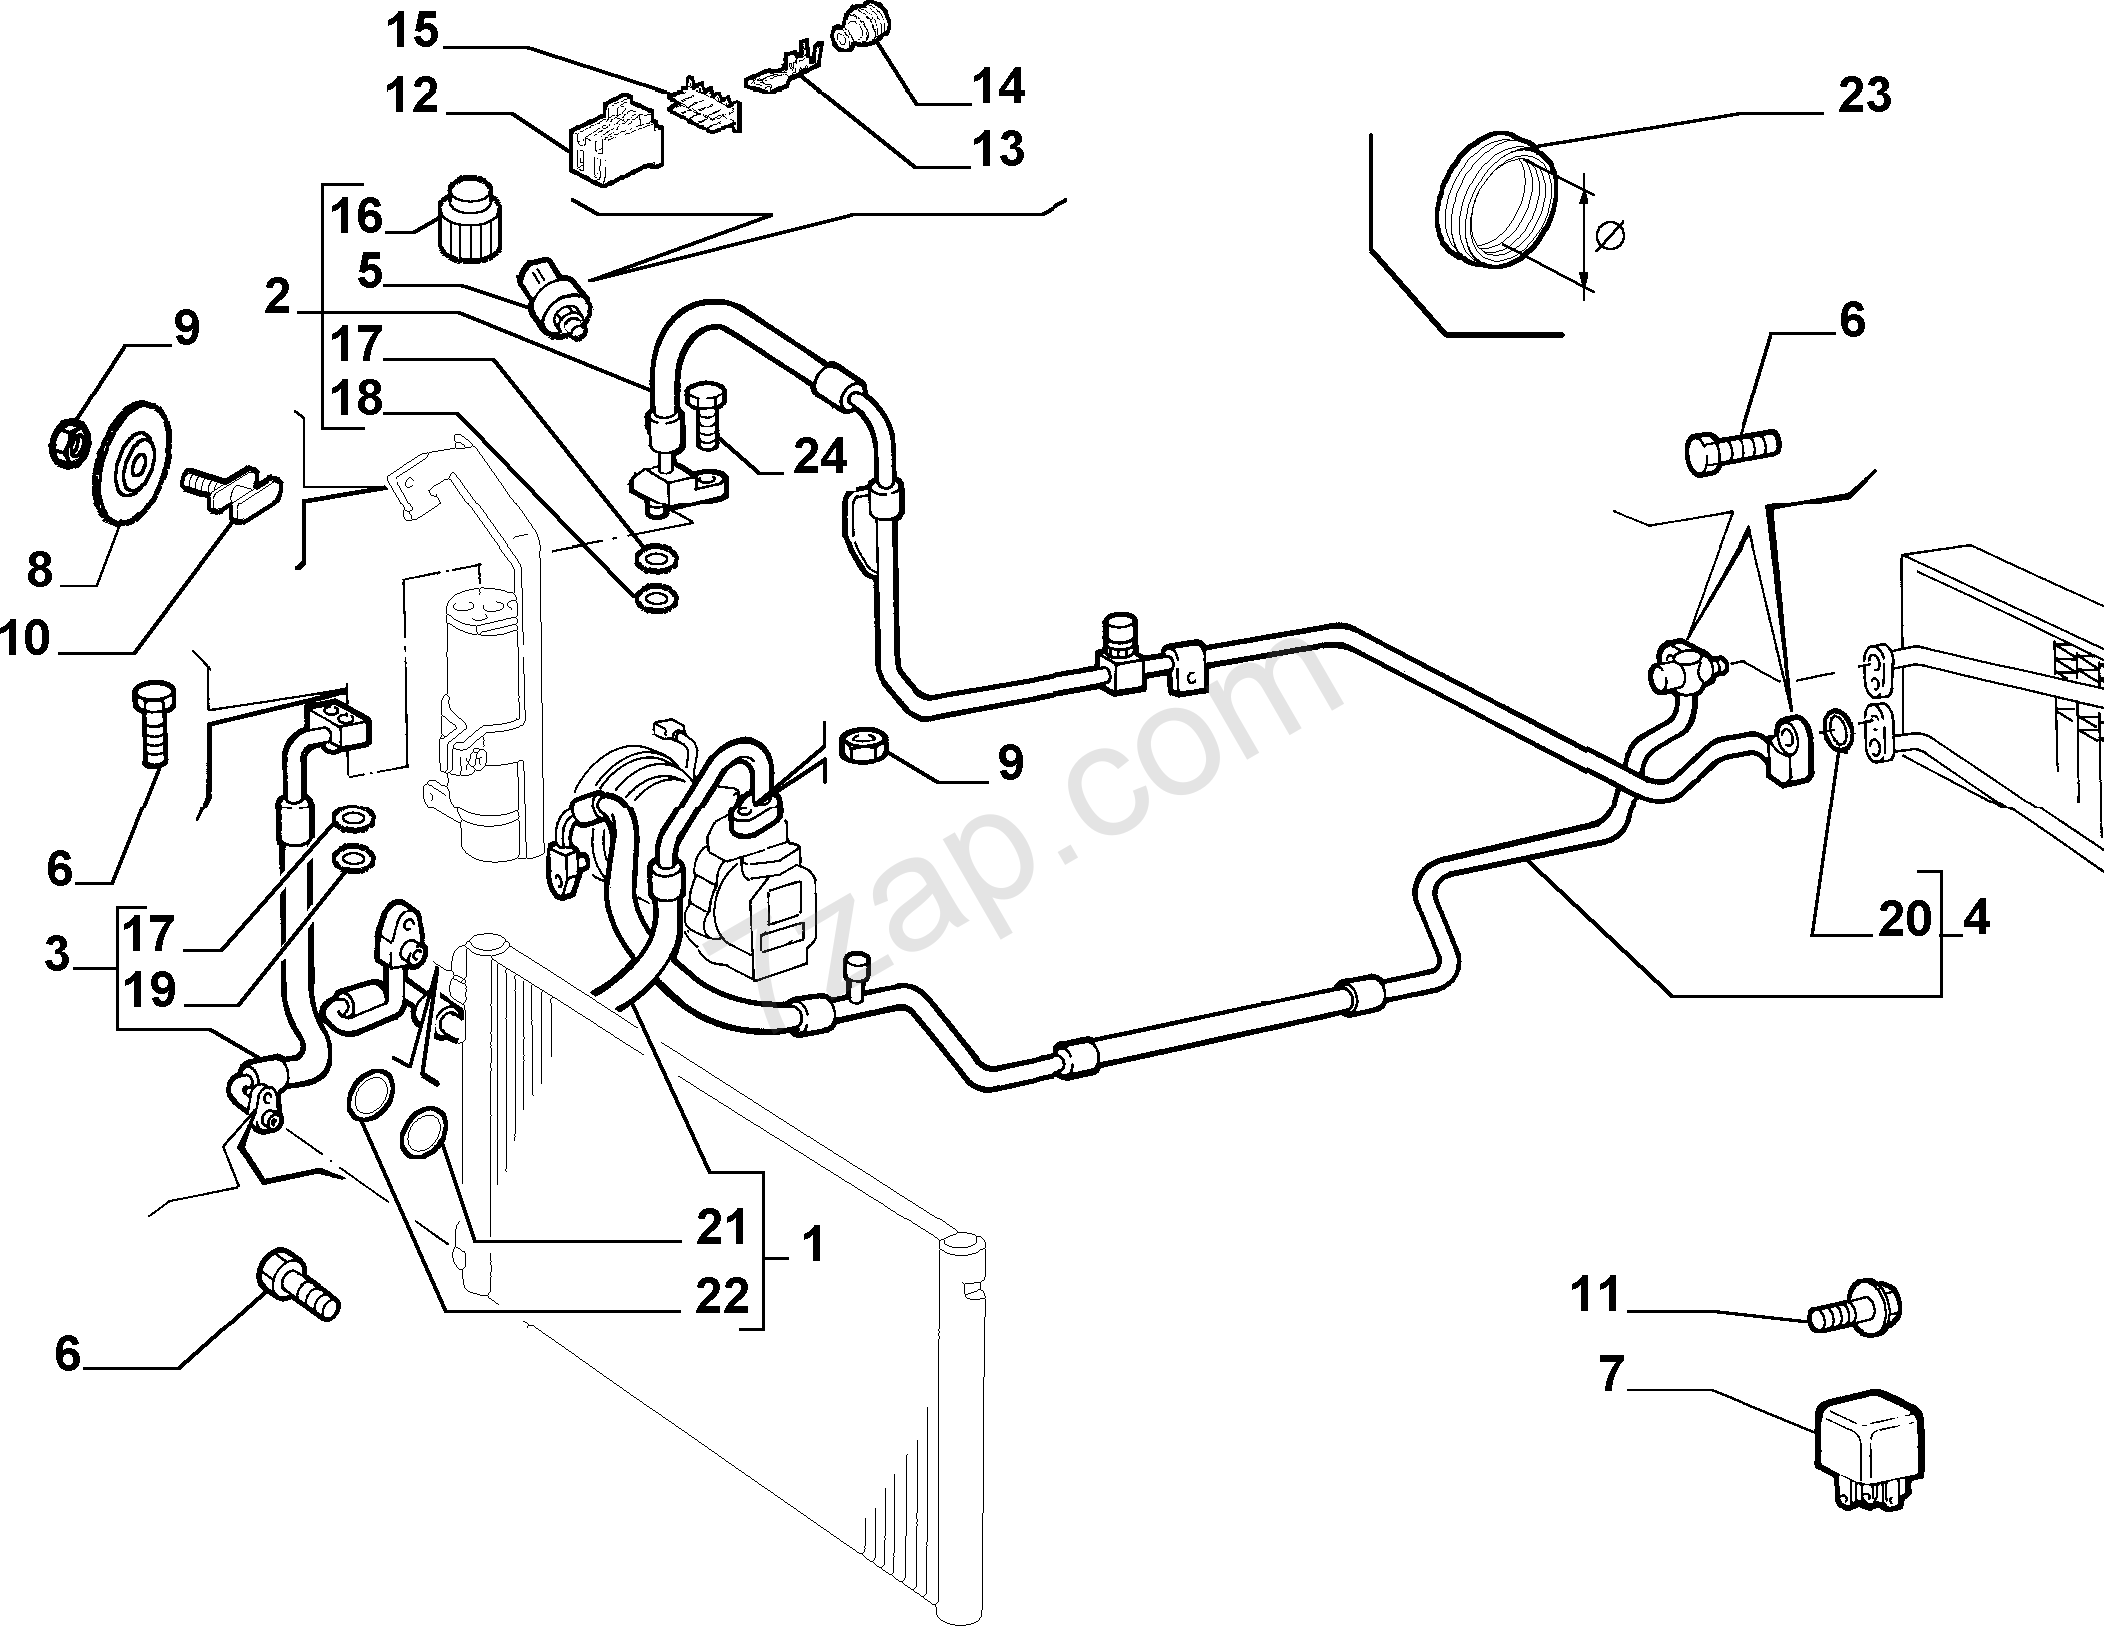 fiat punto hose diagram  fiat  auto parts catalog and diagram